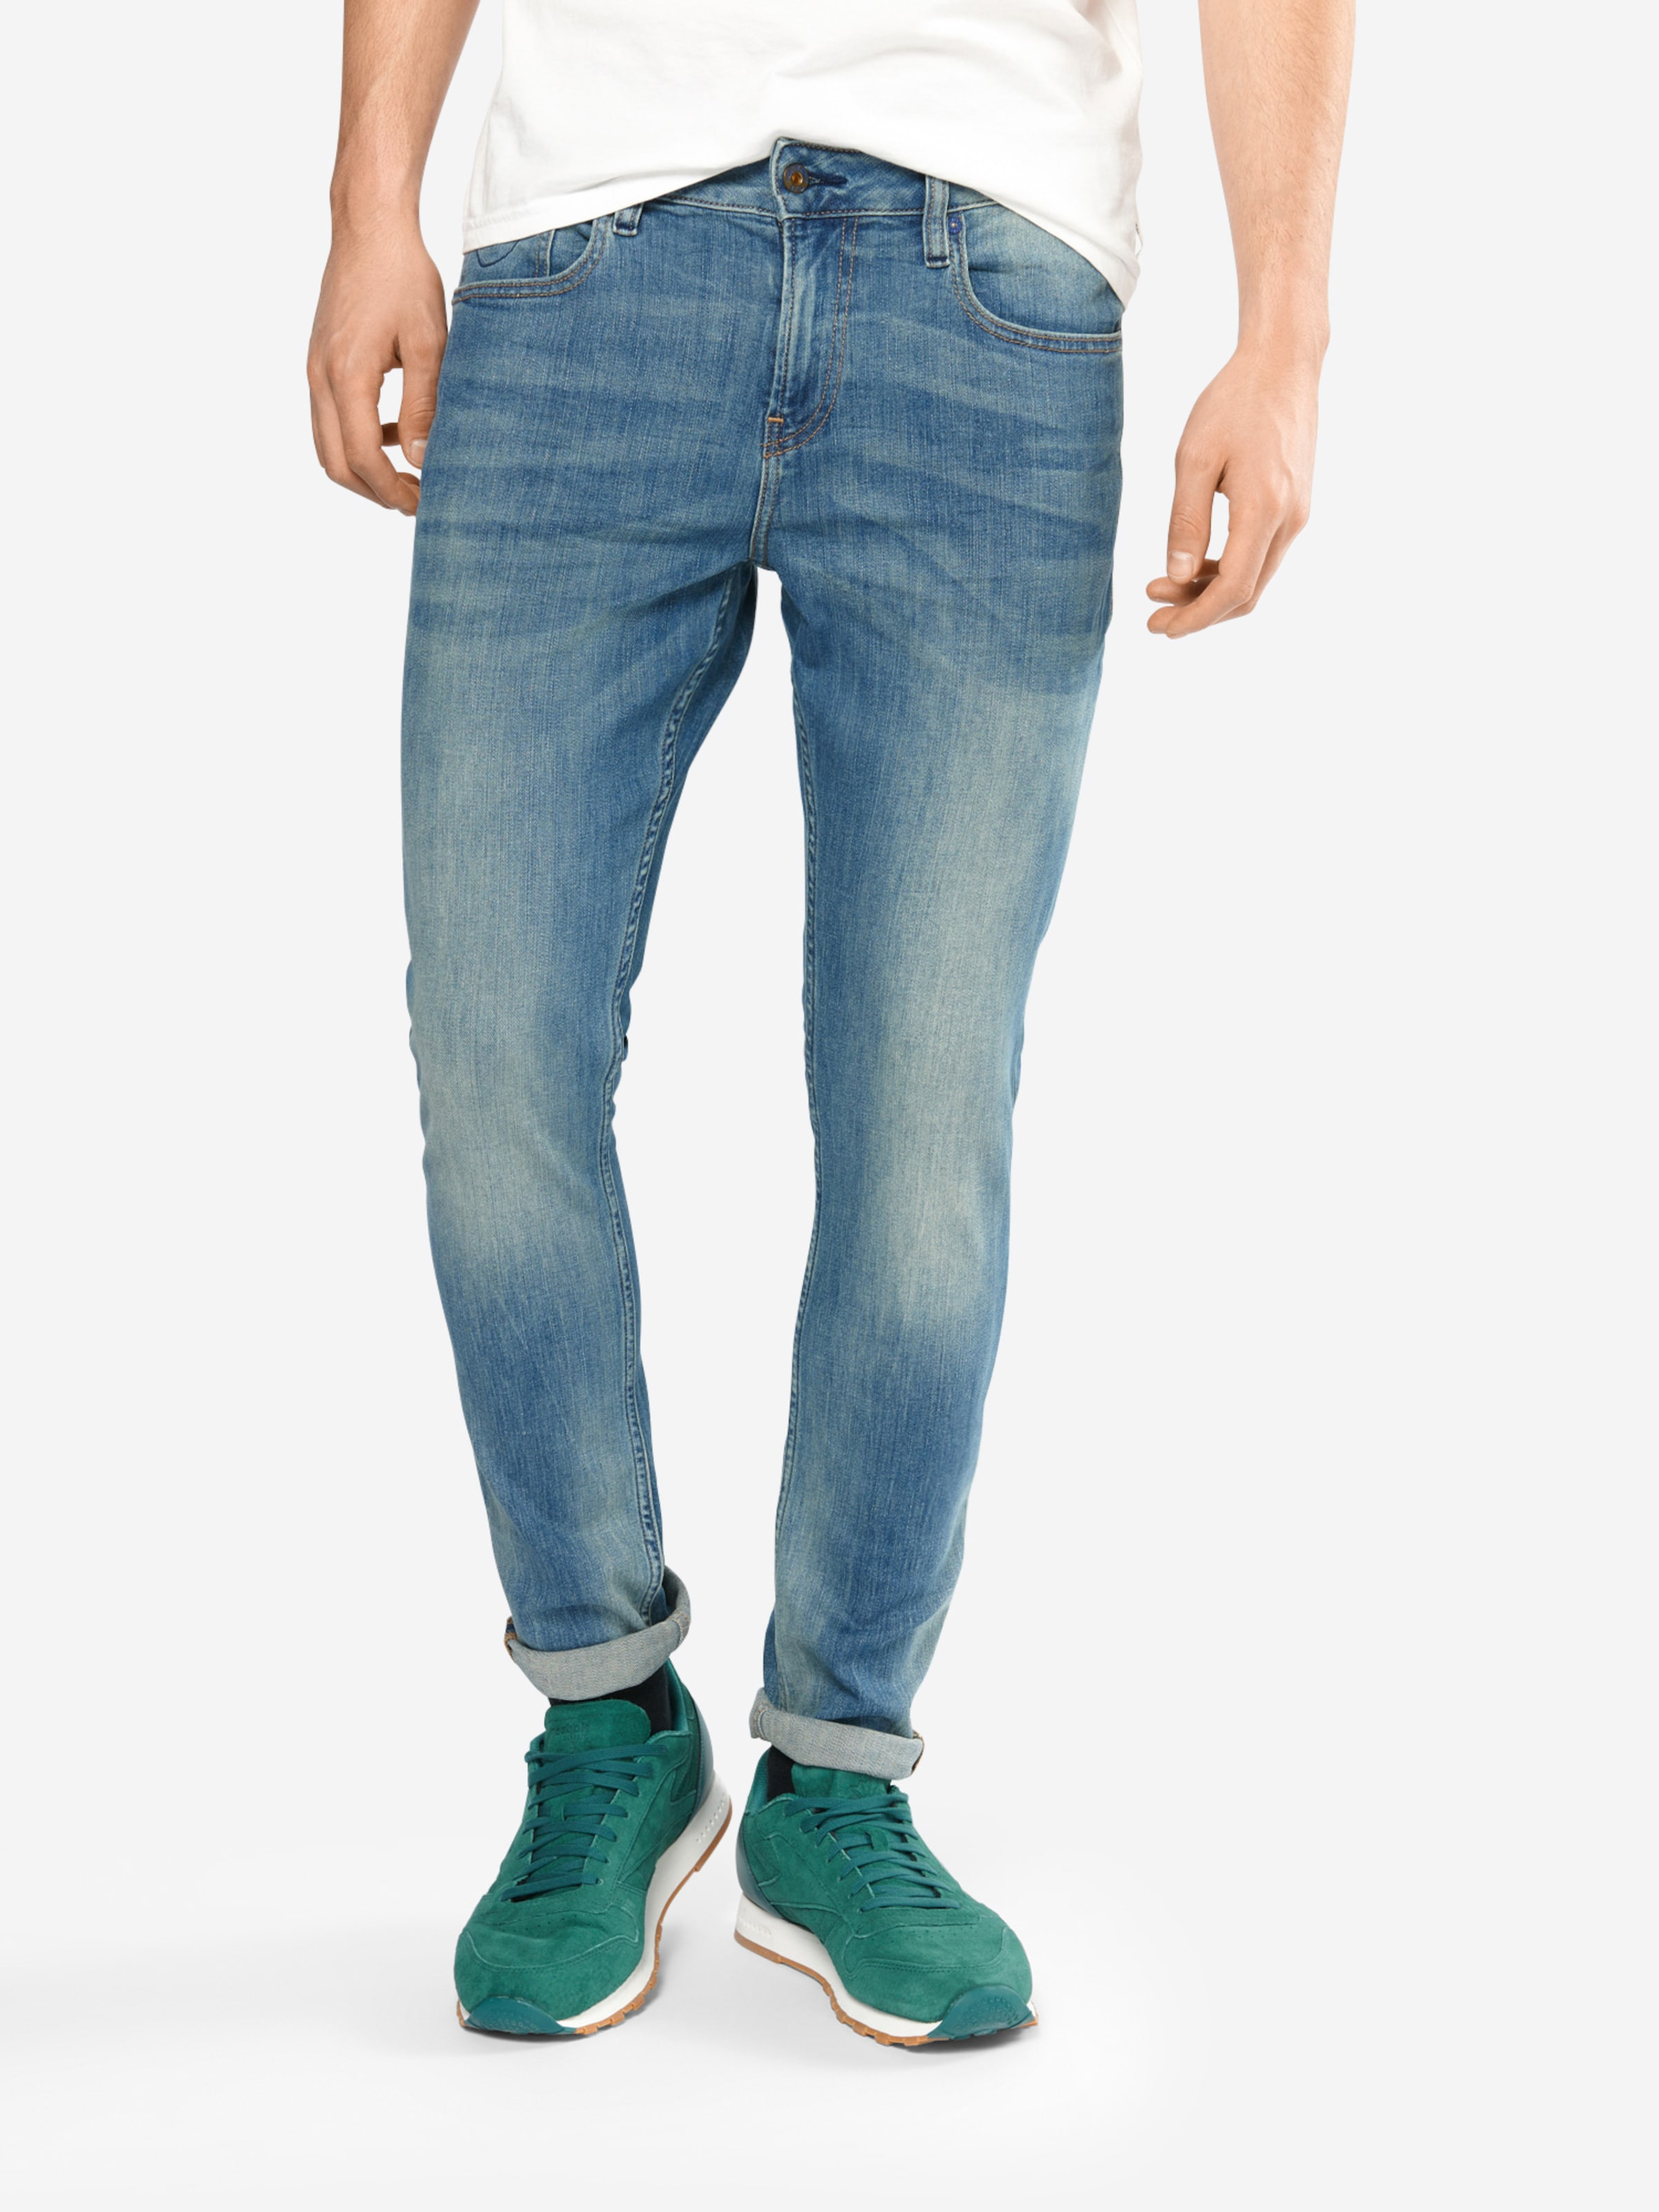 SCOTCH & SODA Jeans 'Skim - Green to green' Rabatt Fälschung Angebot ZCpzO0Xp